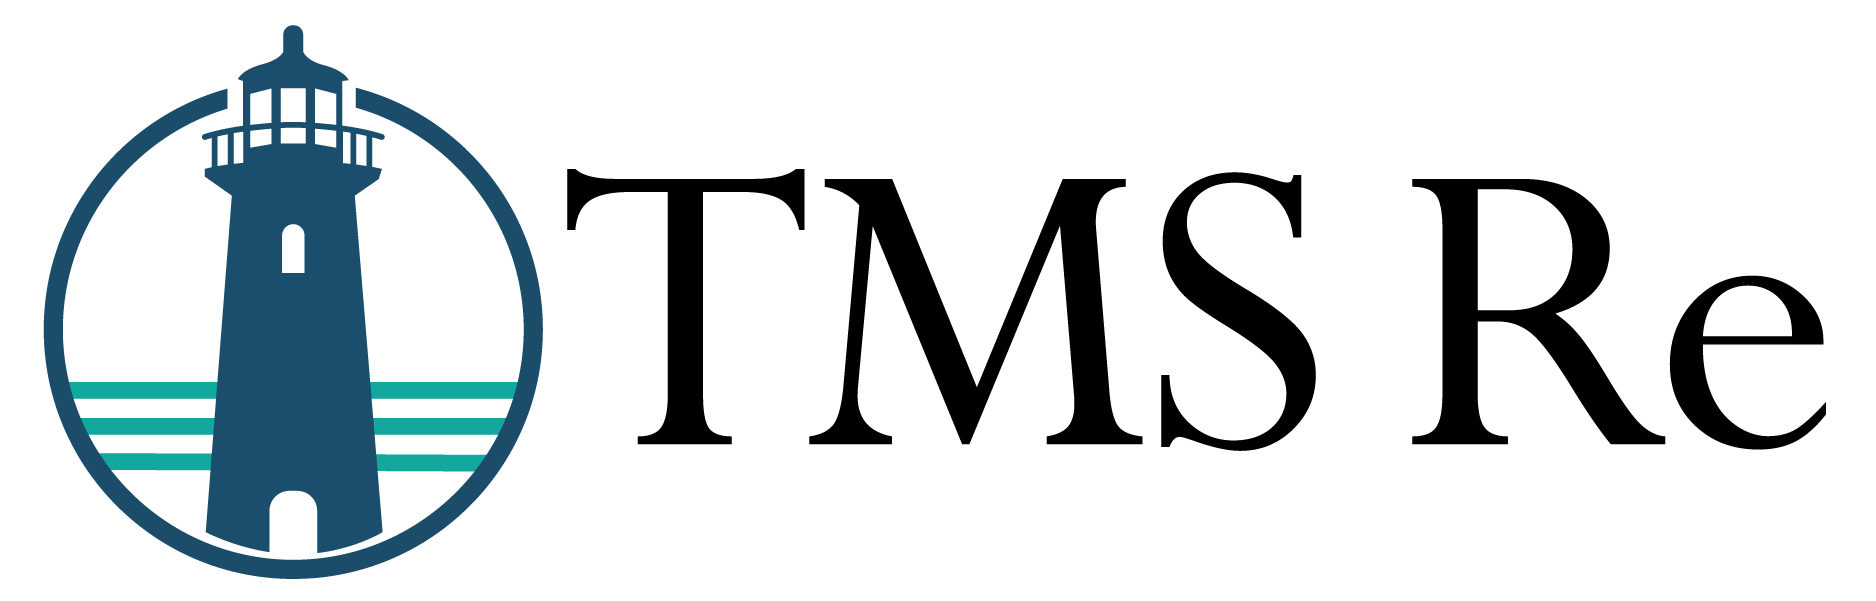 TMSRE-logo-final-full-color-300dpi-01.png